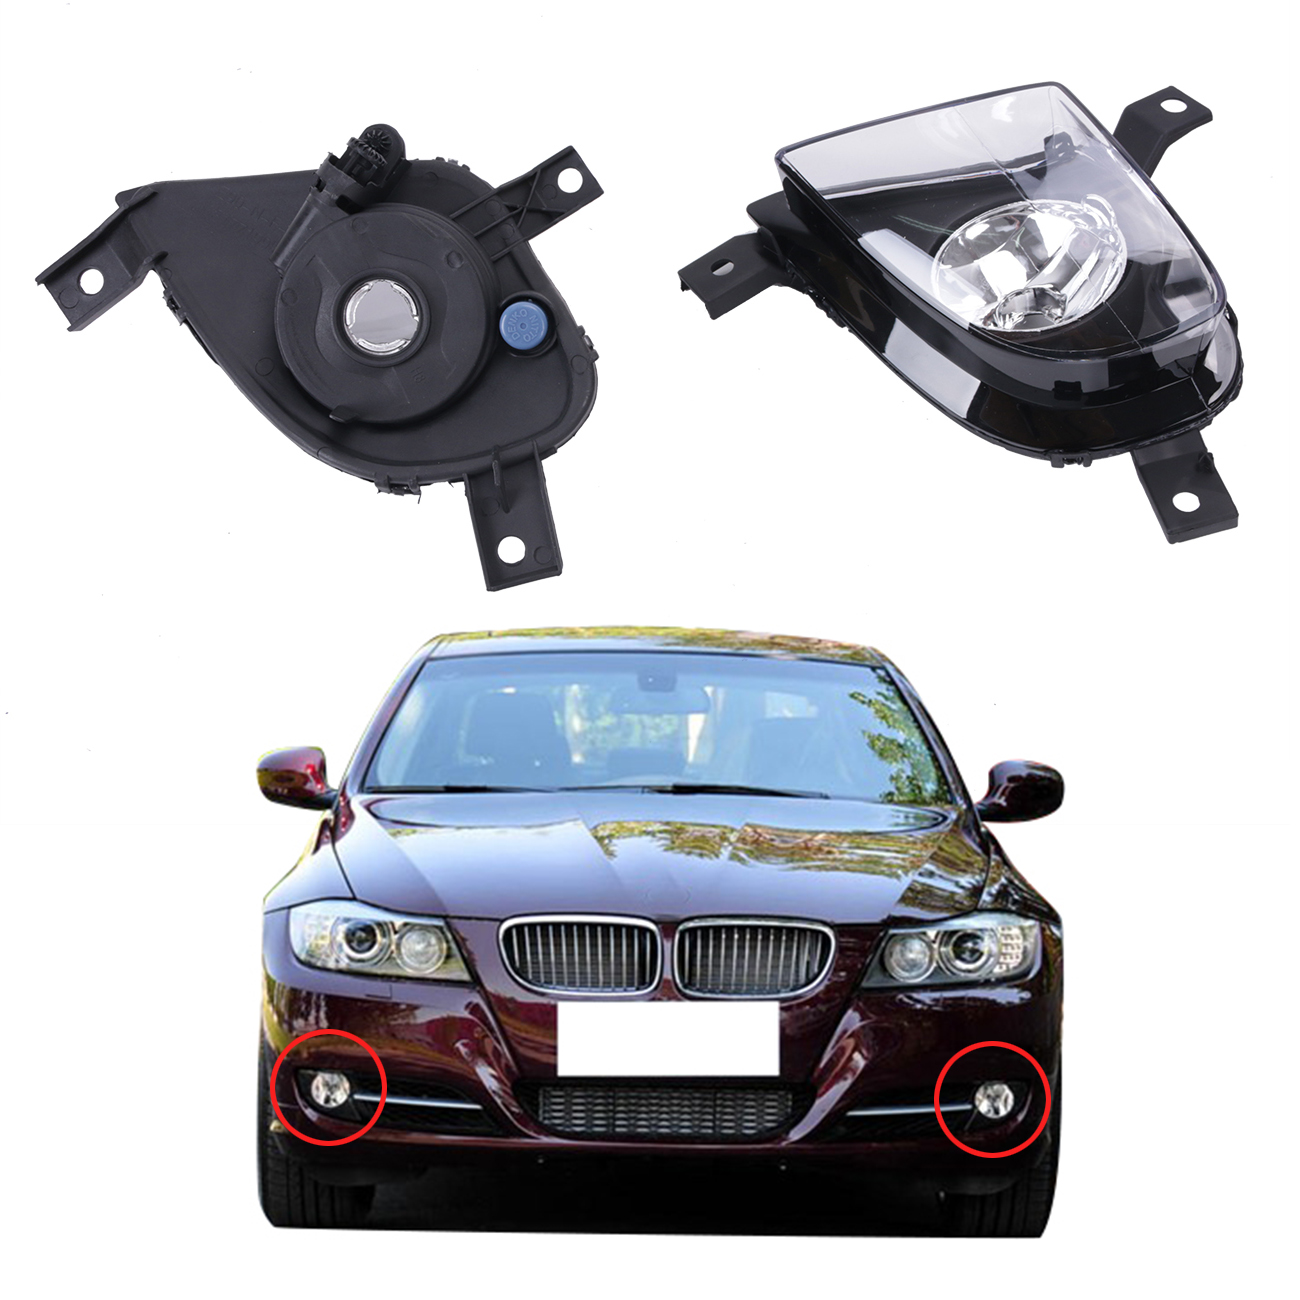 Fog Lights Lamps Foglamps Cover For BMW 3 Series 328i 323i 335d 335i E90 E91 2009 2010 2011 OEM 63177199893 63177199894 #W085 свечин николай варшавские тайны